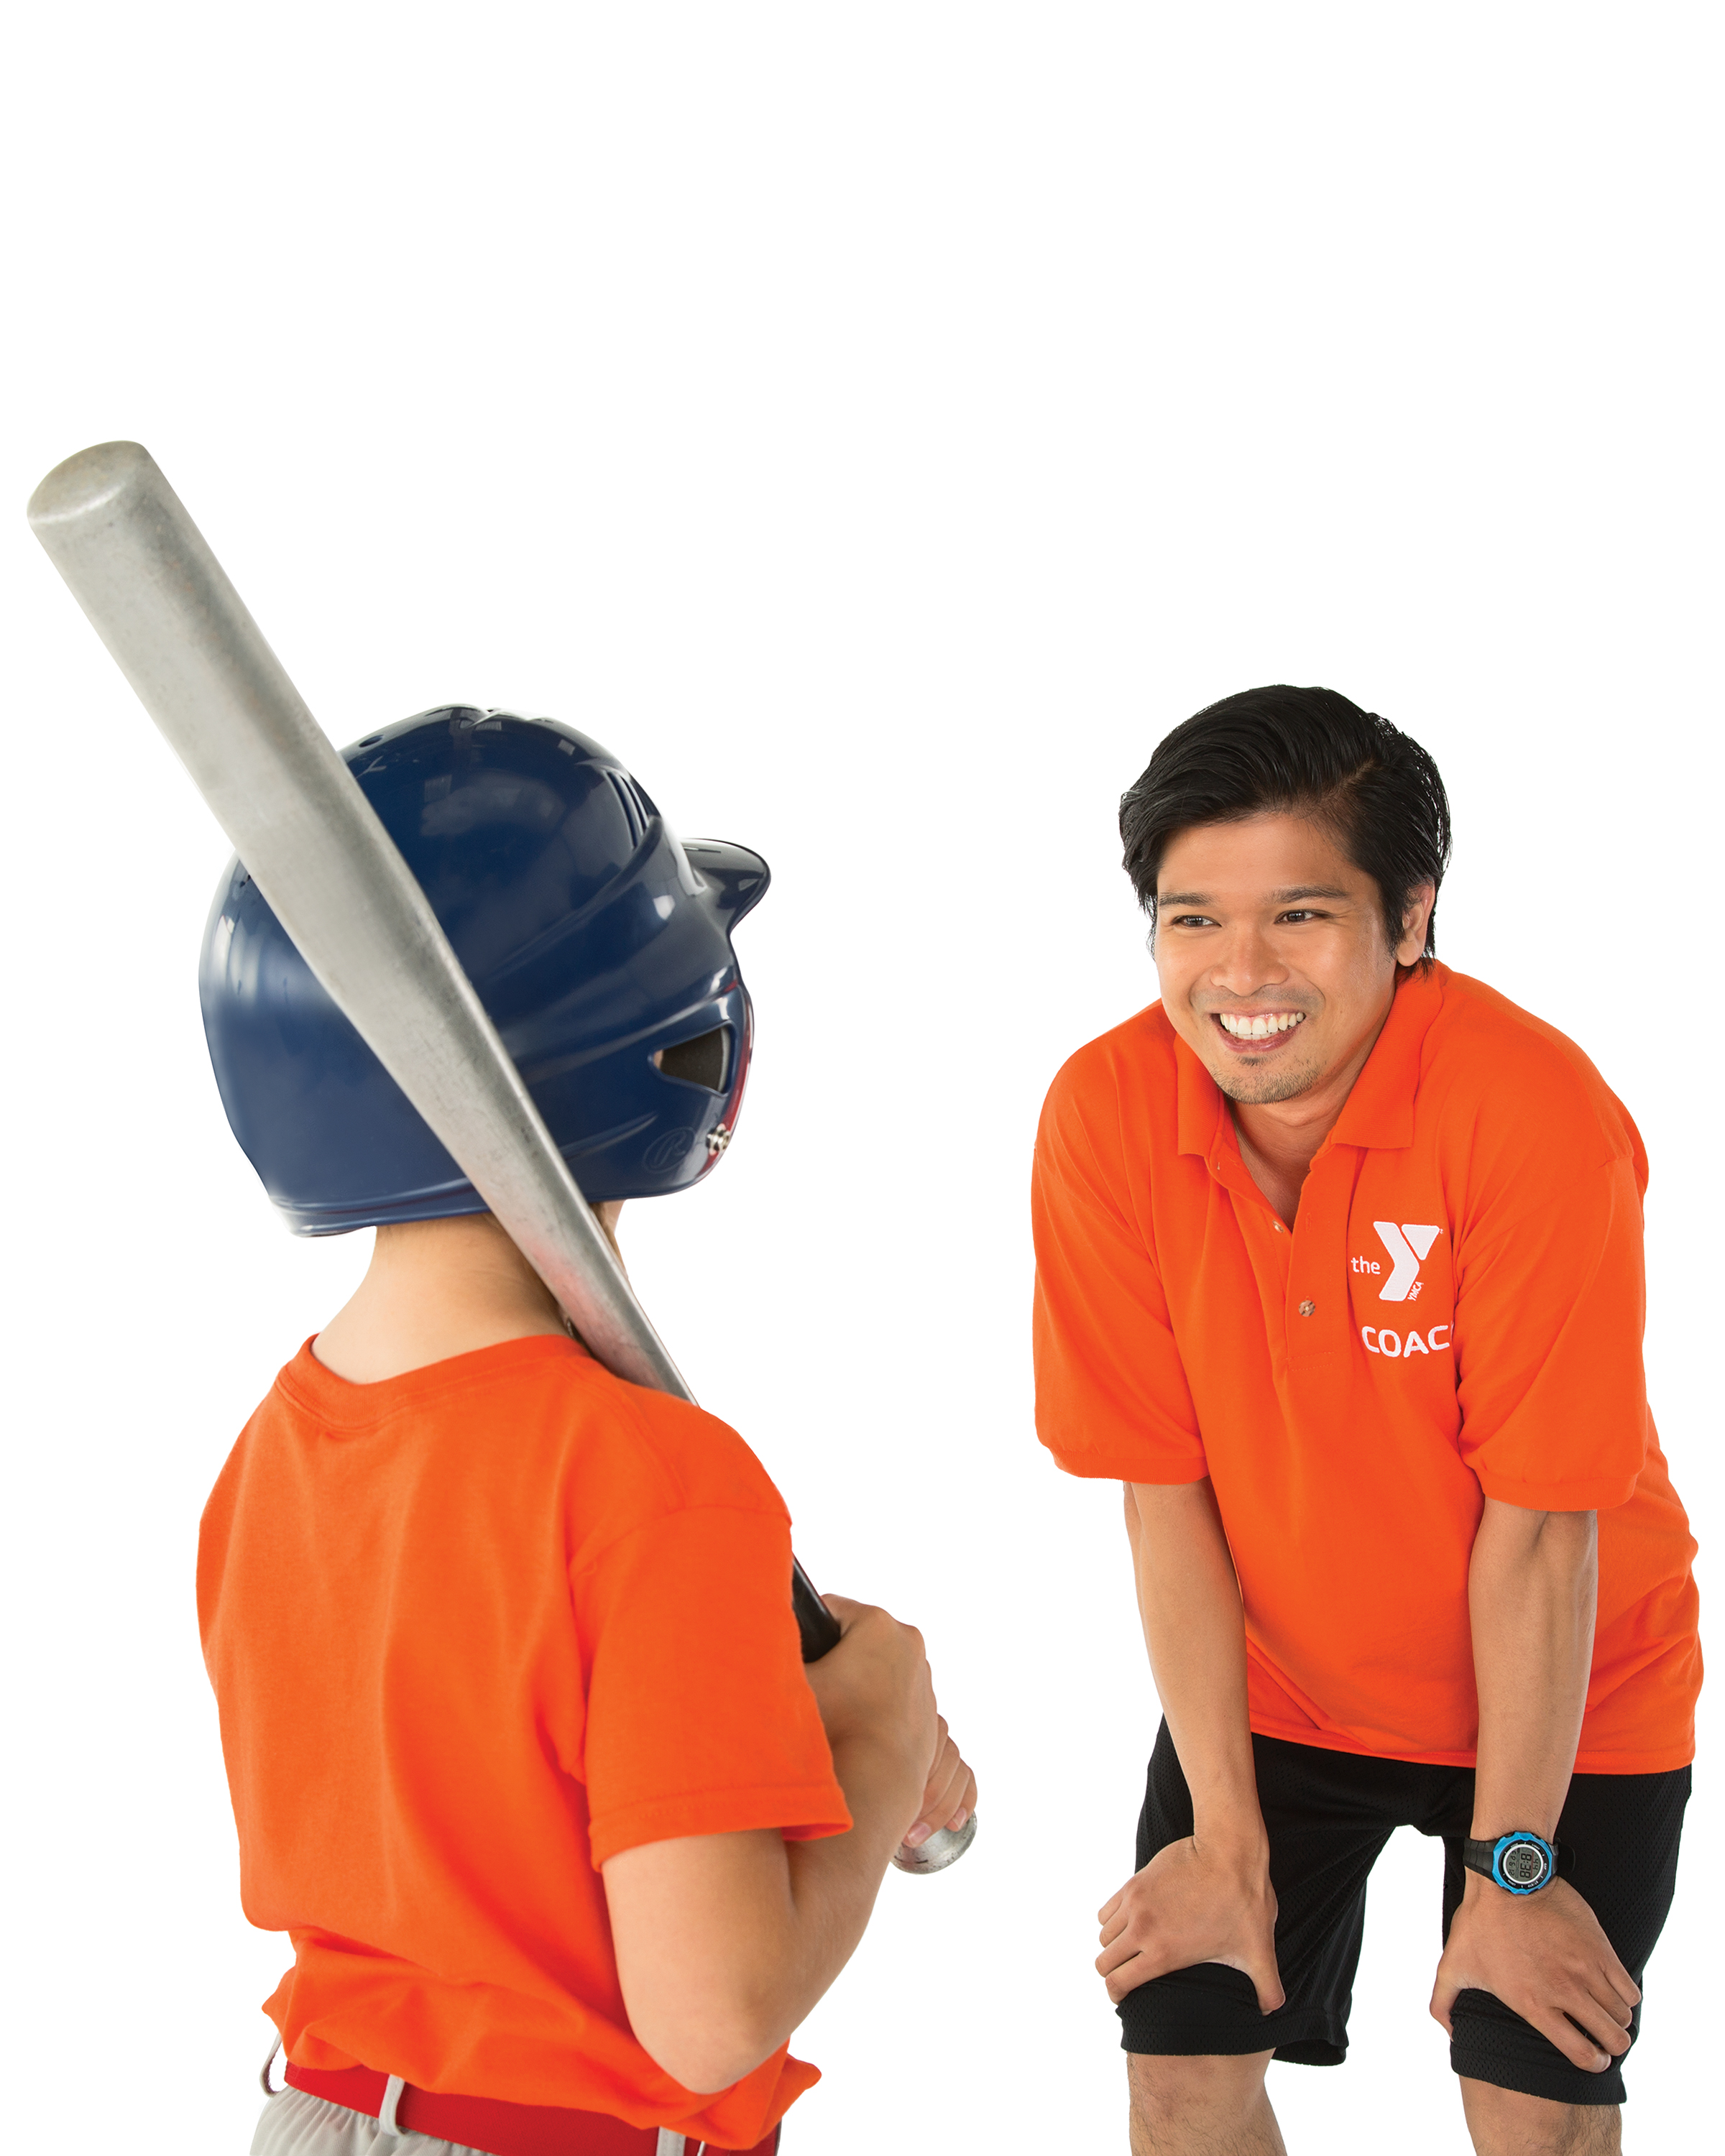 A child with his back to the camera holding a baseball bat, a man smiling and giving him instruction